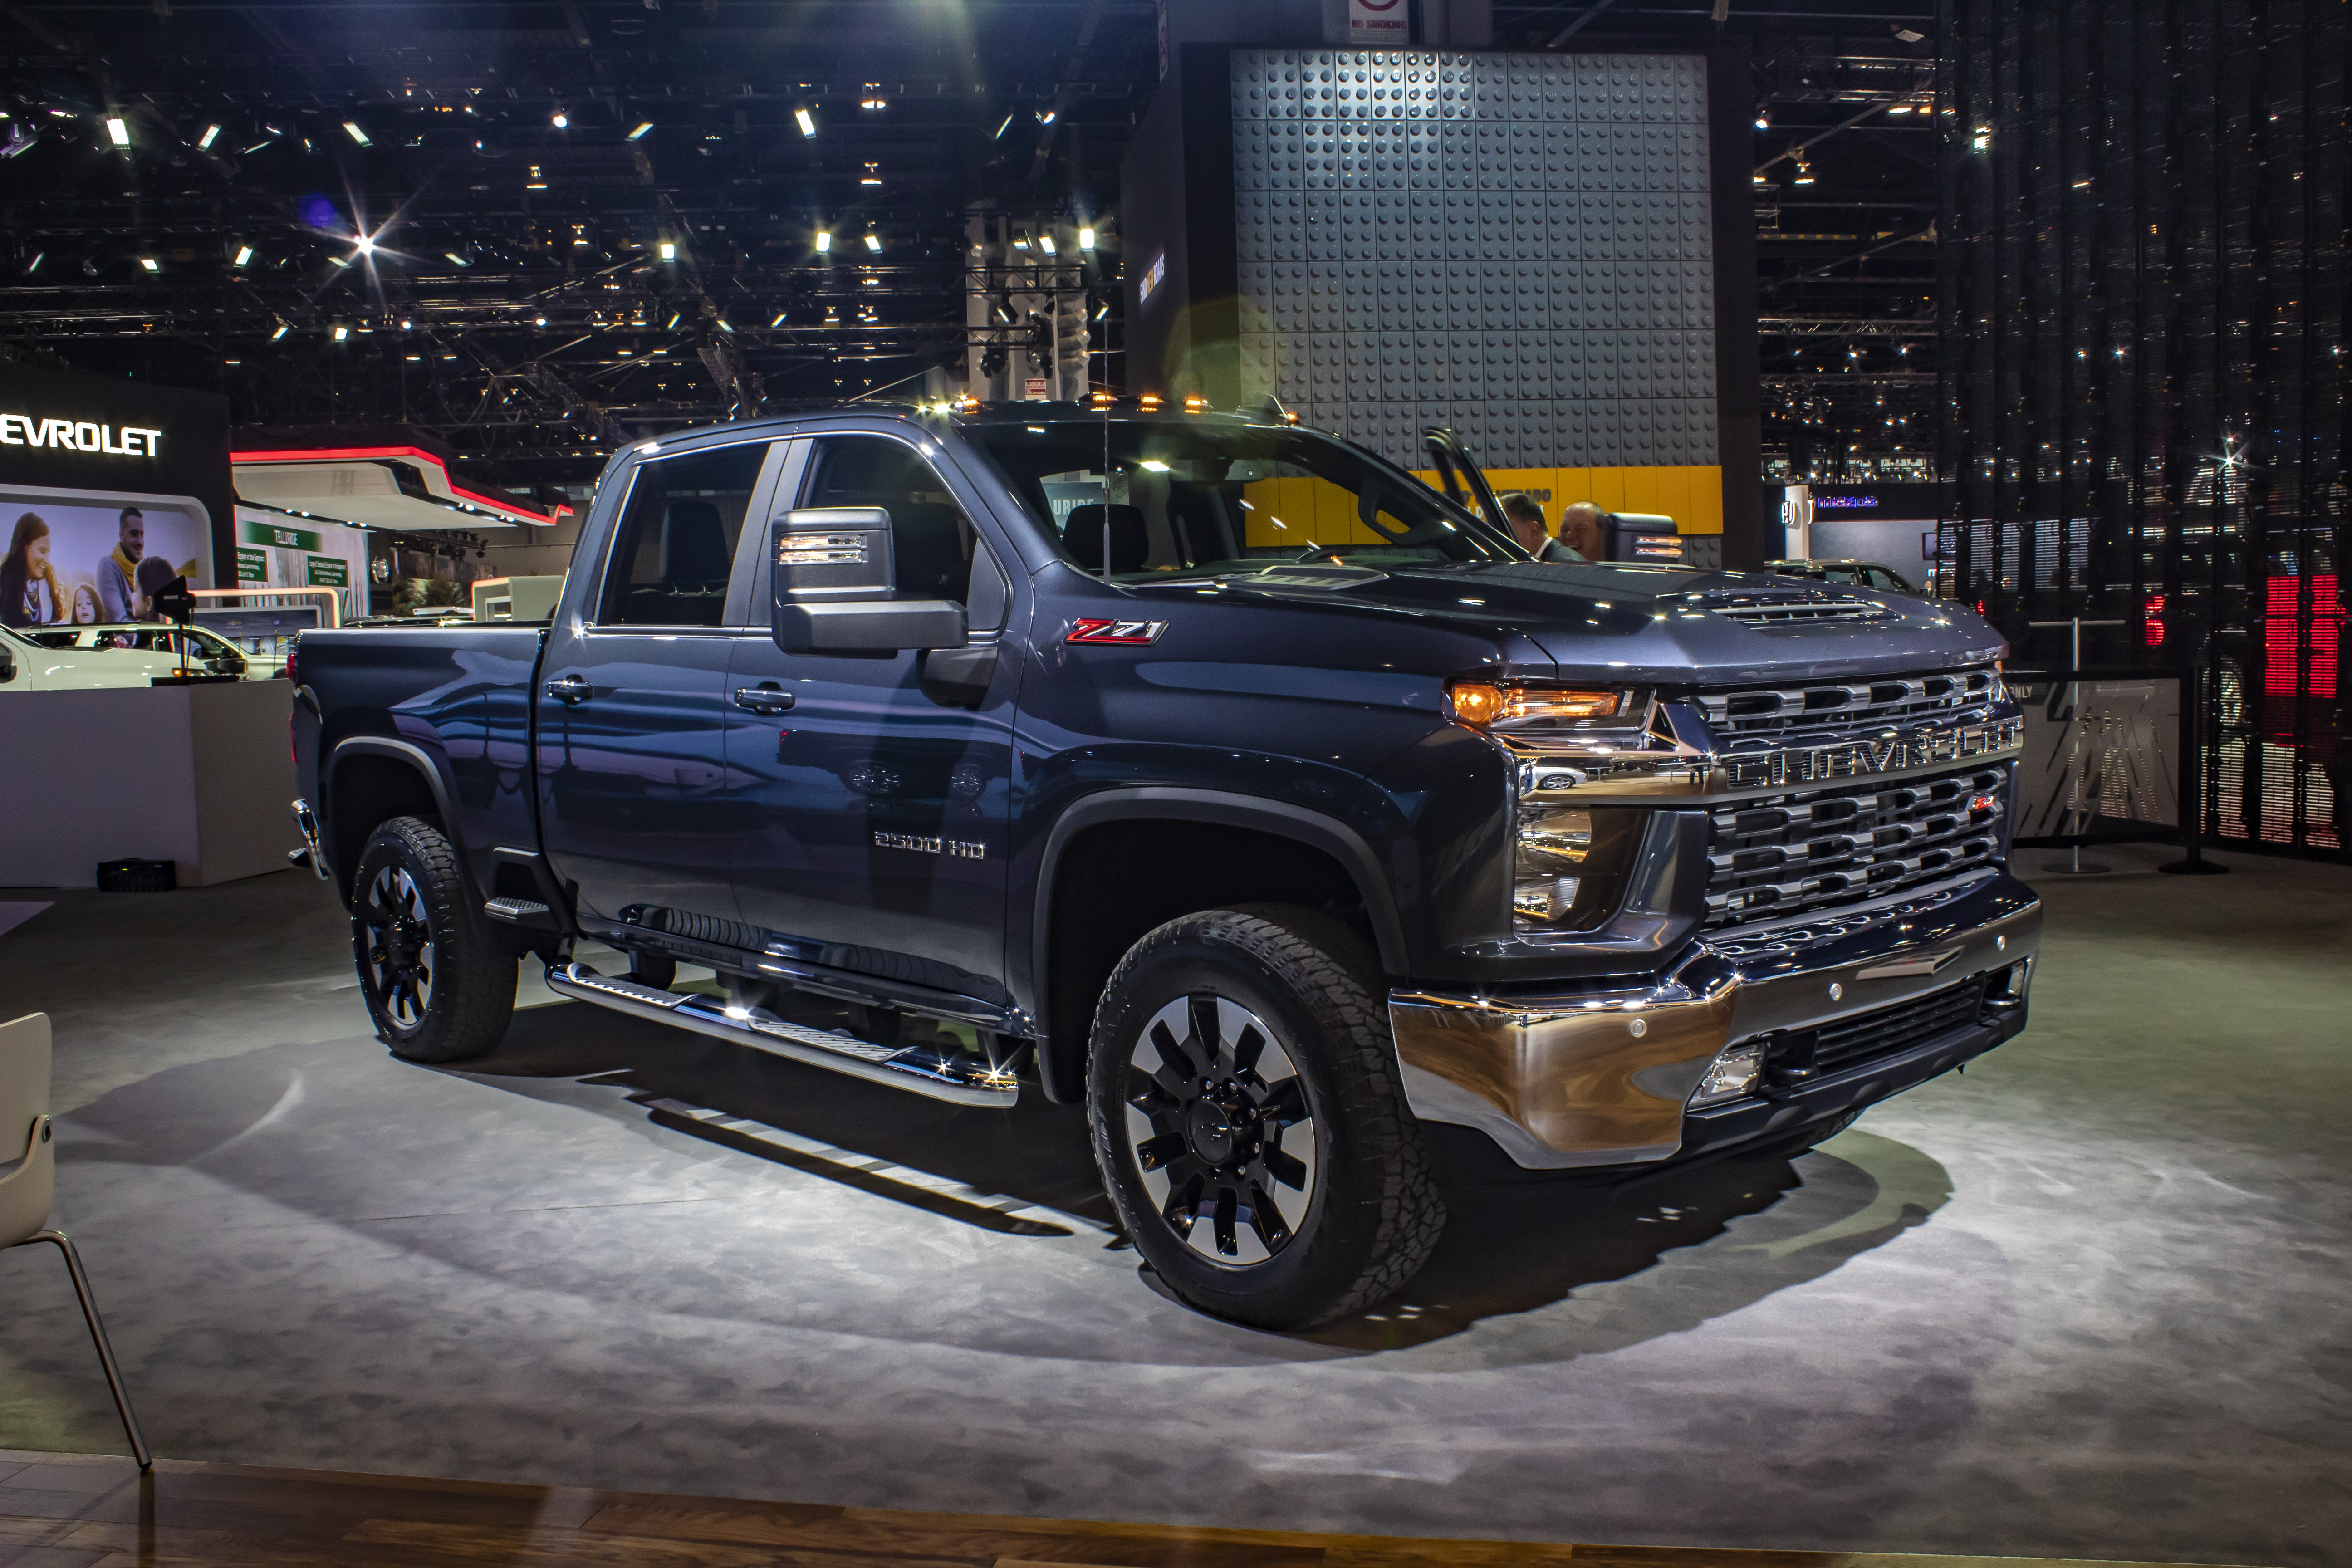 2020 Chevrolet Silverado 2500 HD LT Pictures, Photos ...